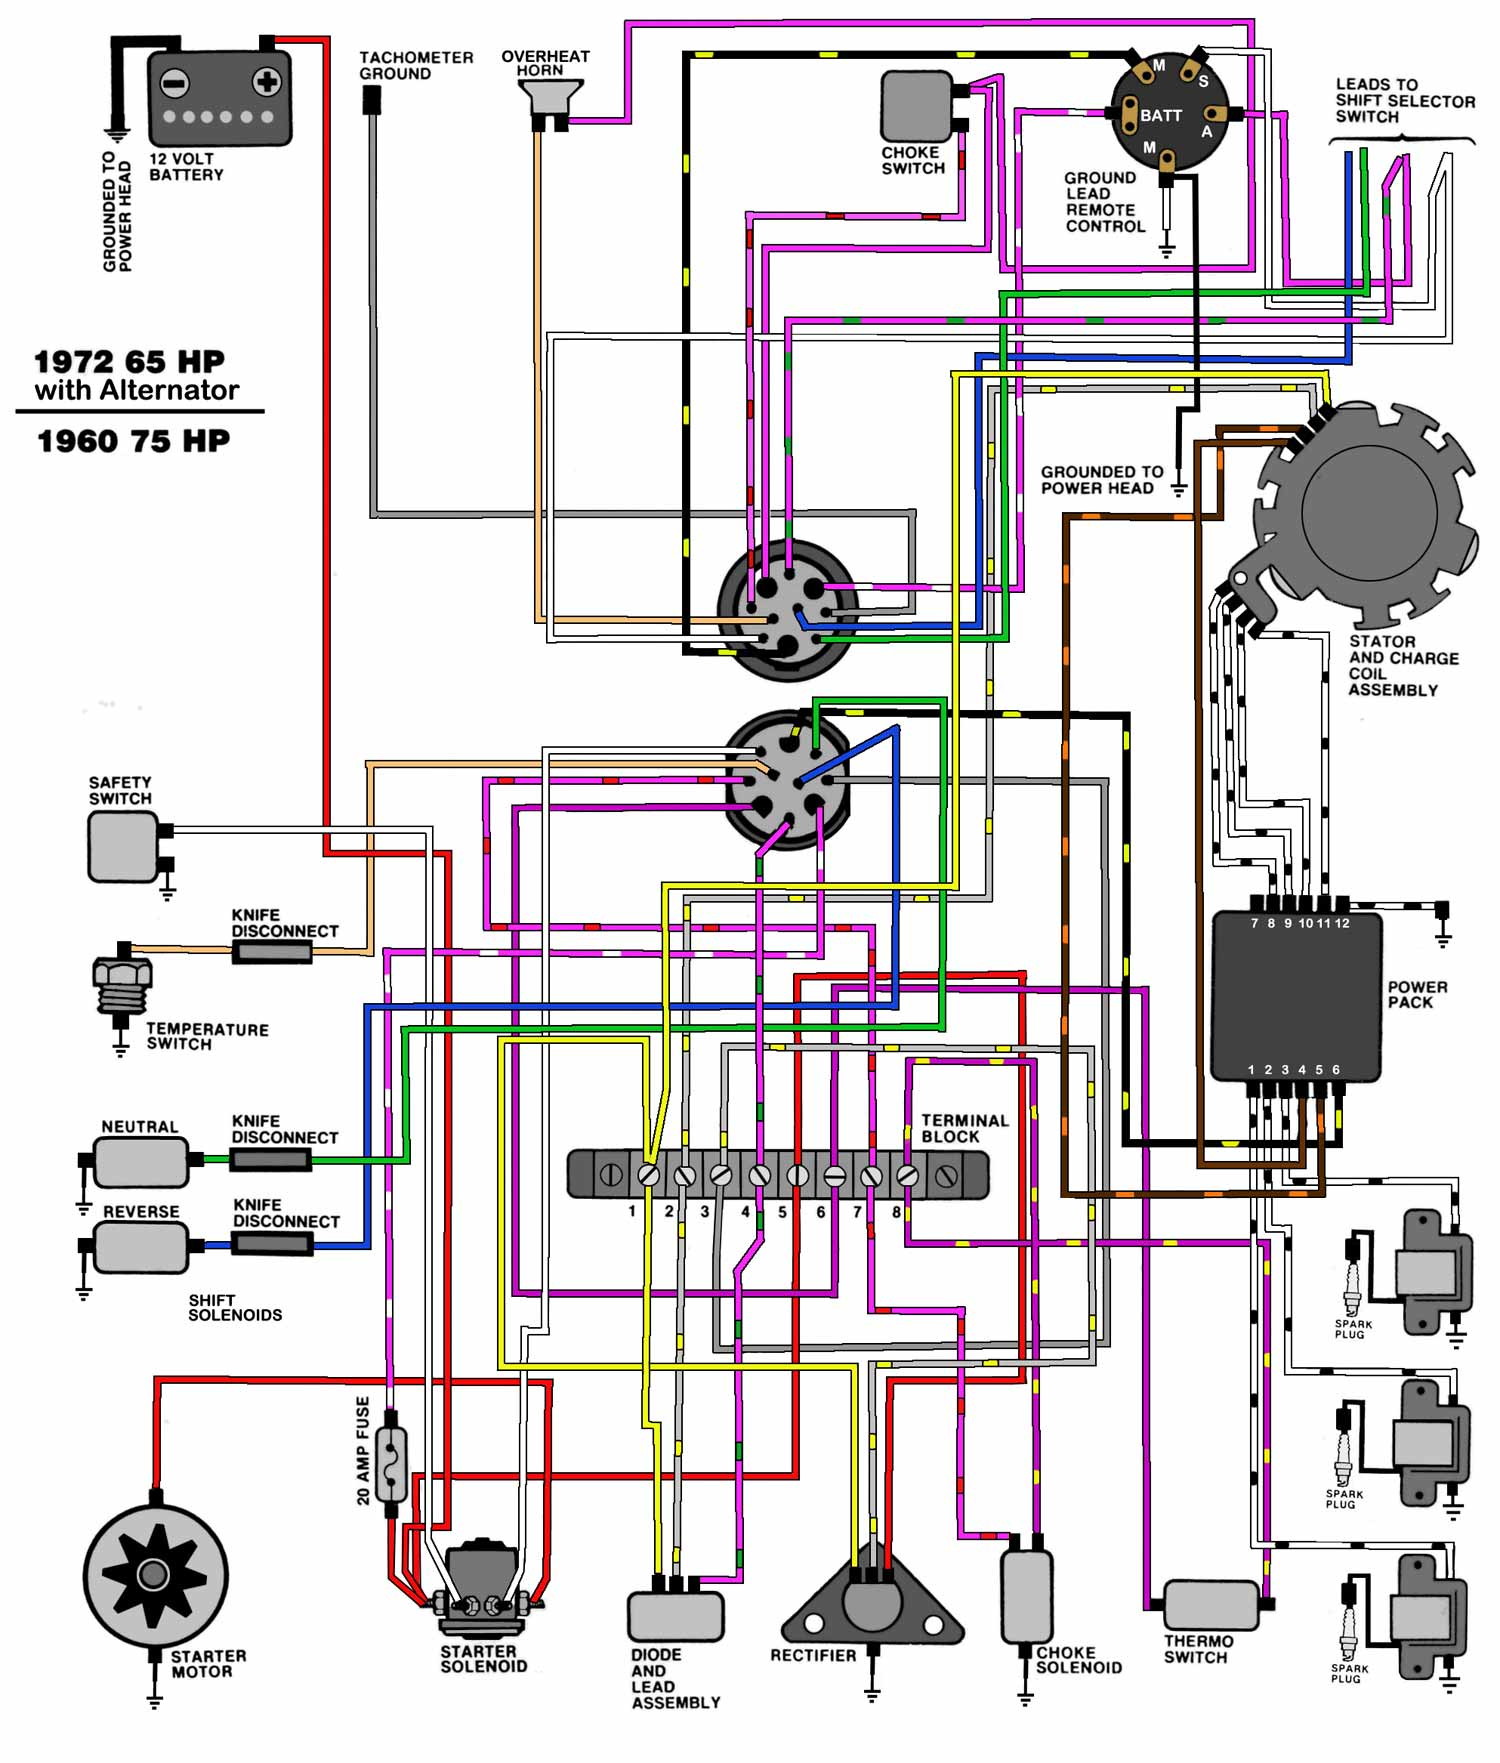 1972_65_Eshift omc wiring harness diagram johmson wiring harness \u2022 wiring wiring diagram for johnson outboard motor at mifinder.co